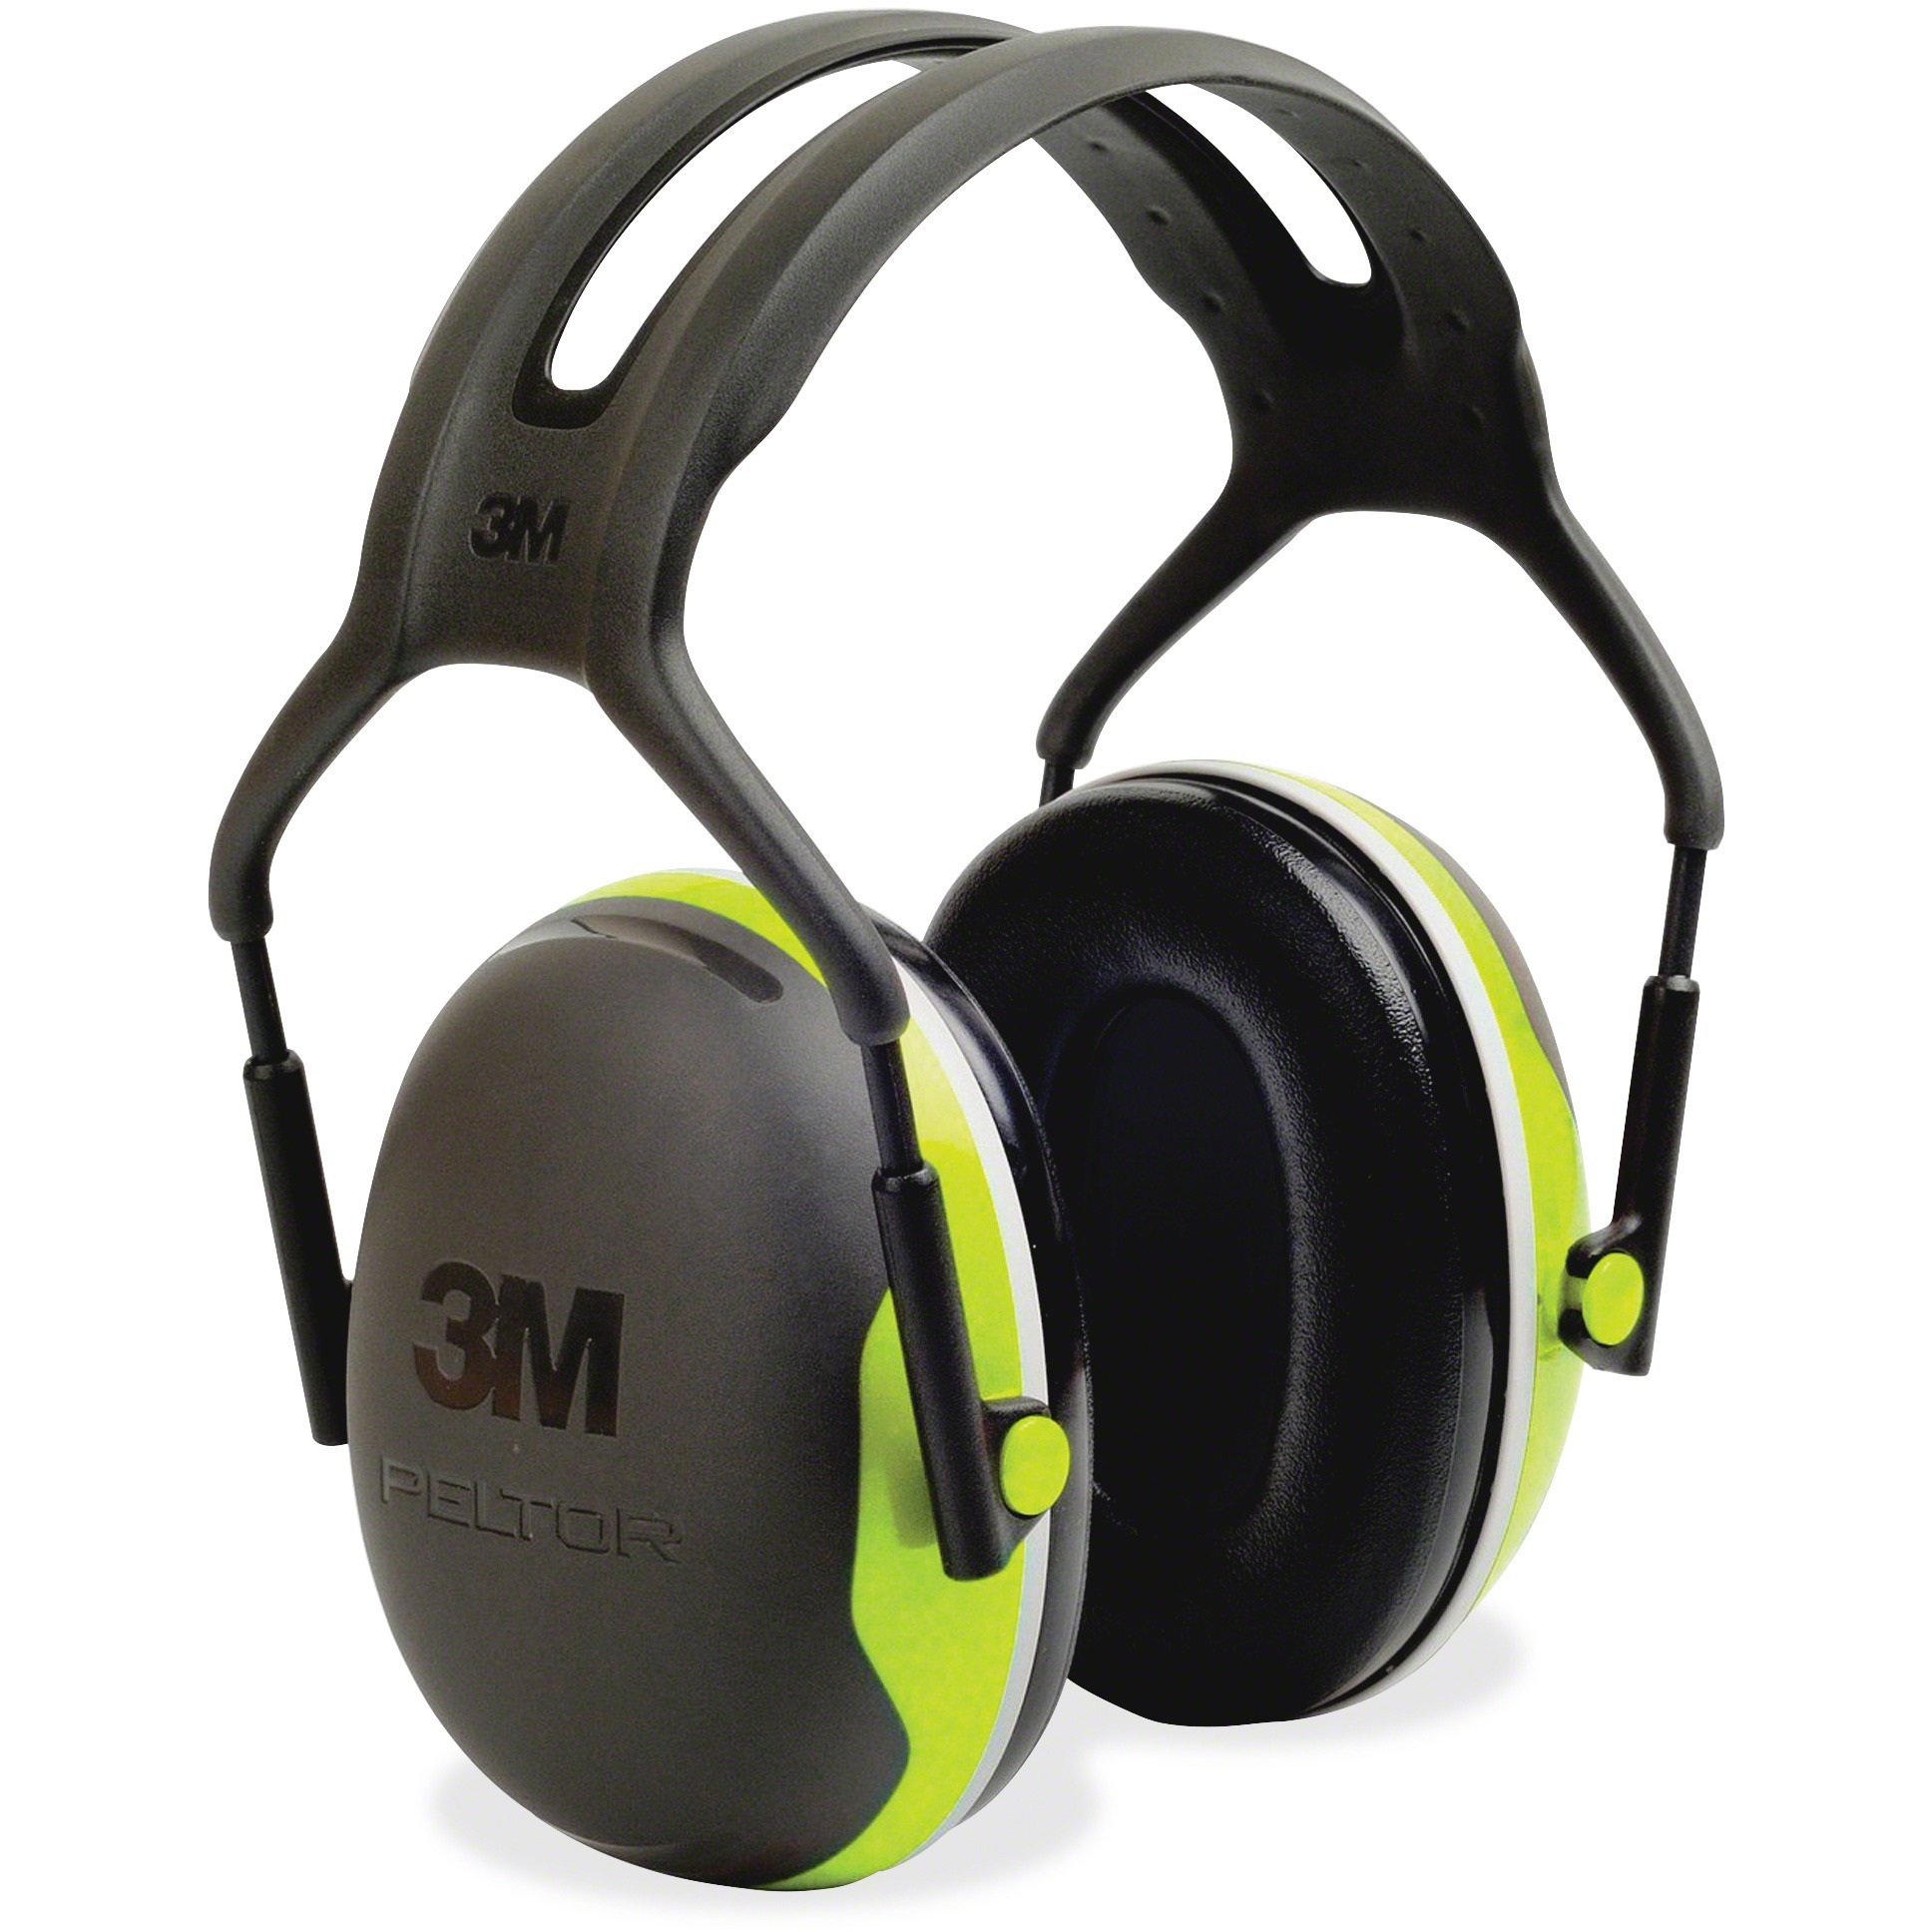 Peltor Black And Chartreuse Model X4A/37273(AAD) Over-The-Head Hearing Conservation Earmuffs